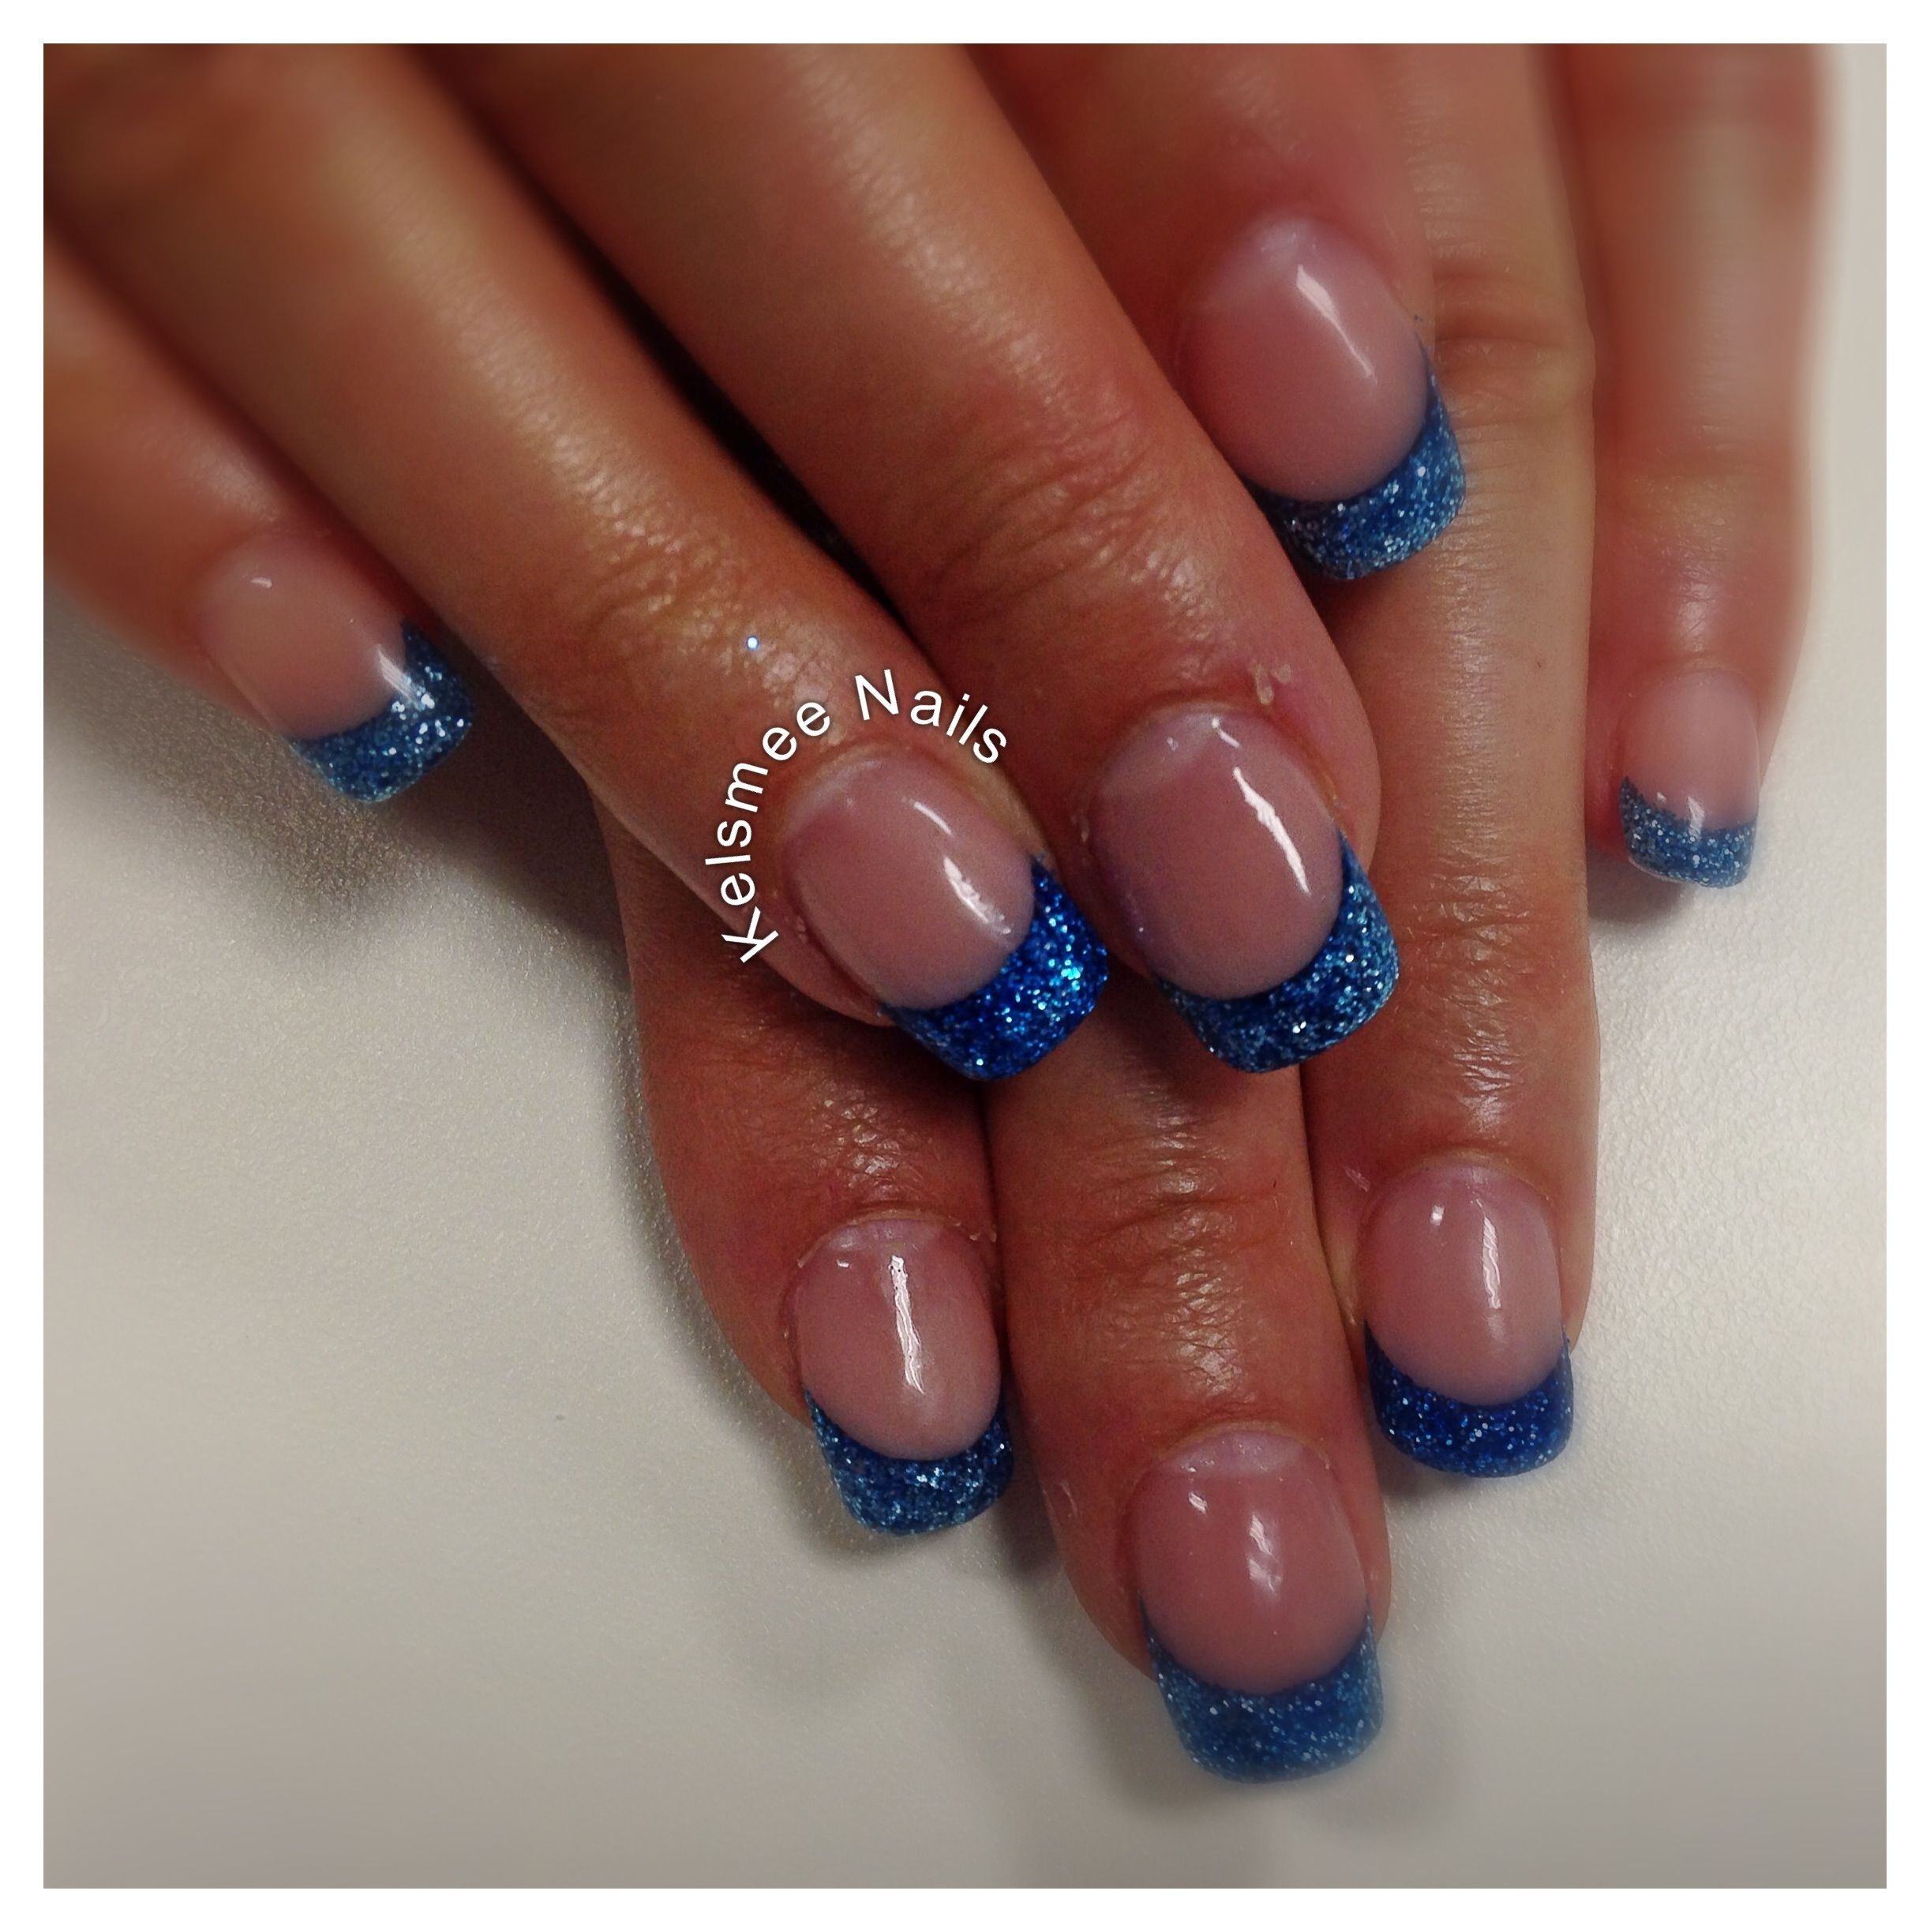 Young Bails acryl cover pink blue glitter French | Nails | Pinterest ...